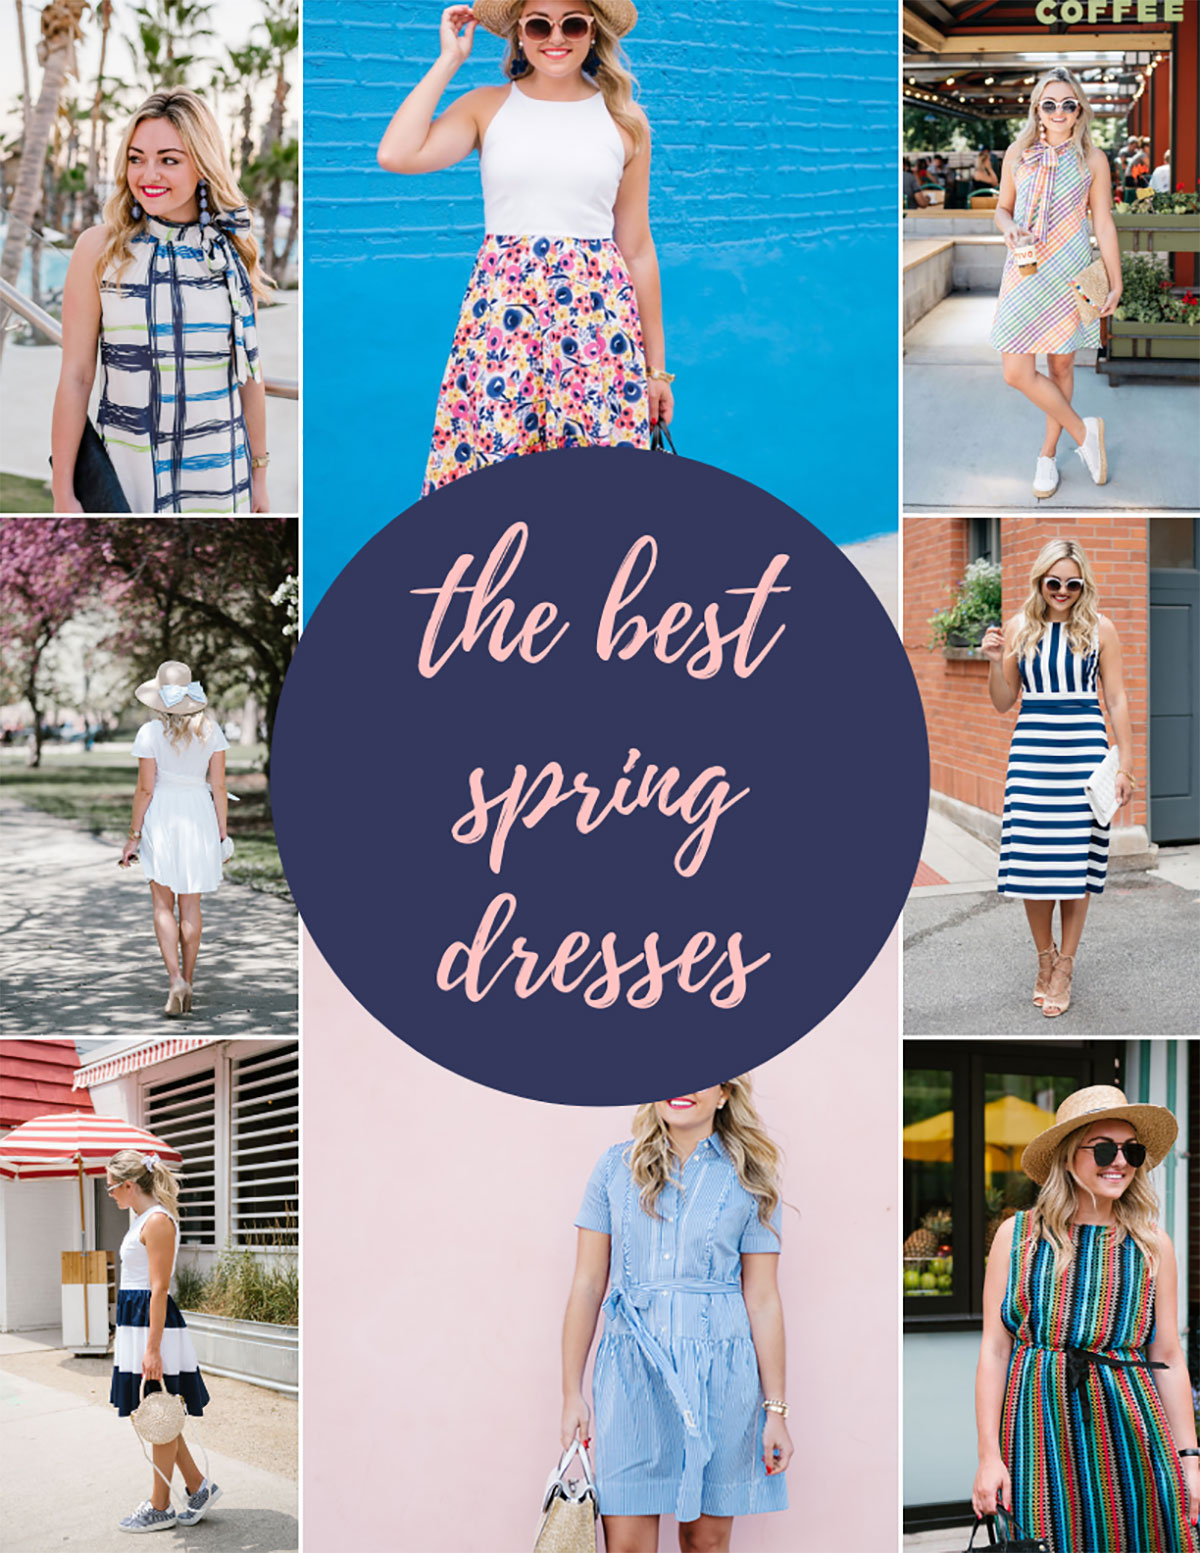 Bows & Sequins shares the best spring dresses to shop right now. They're affordable, too!